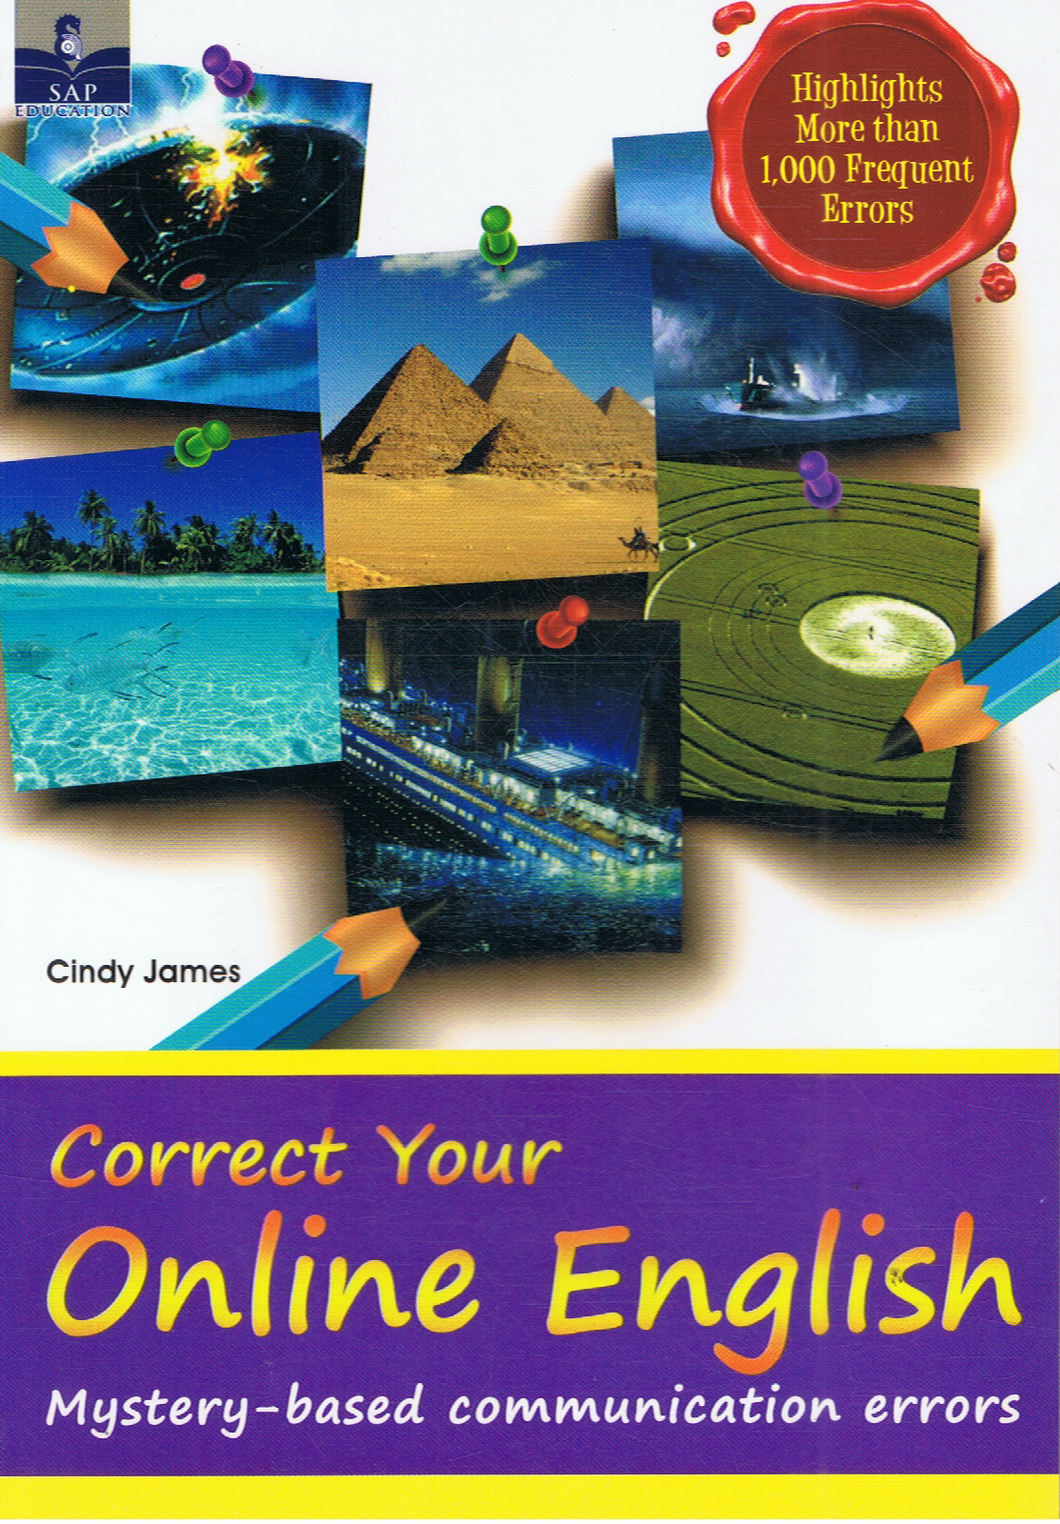 SAP Pendidikan-Correct Your Online English Mystery- Based Communication Errors-9789673215218-BukuDBP.com